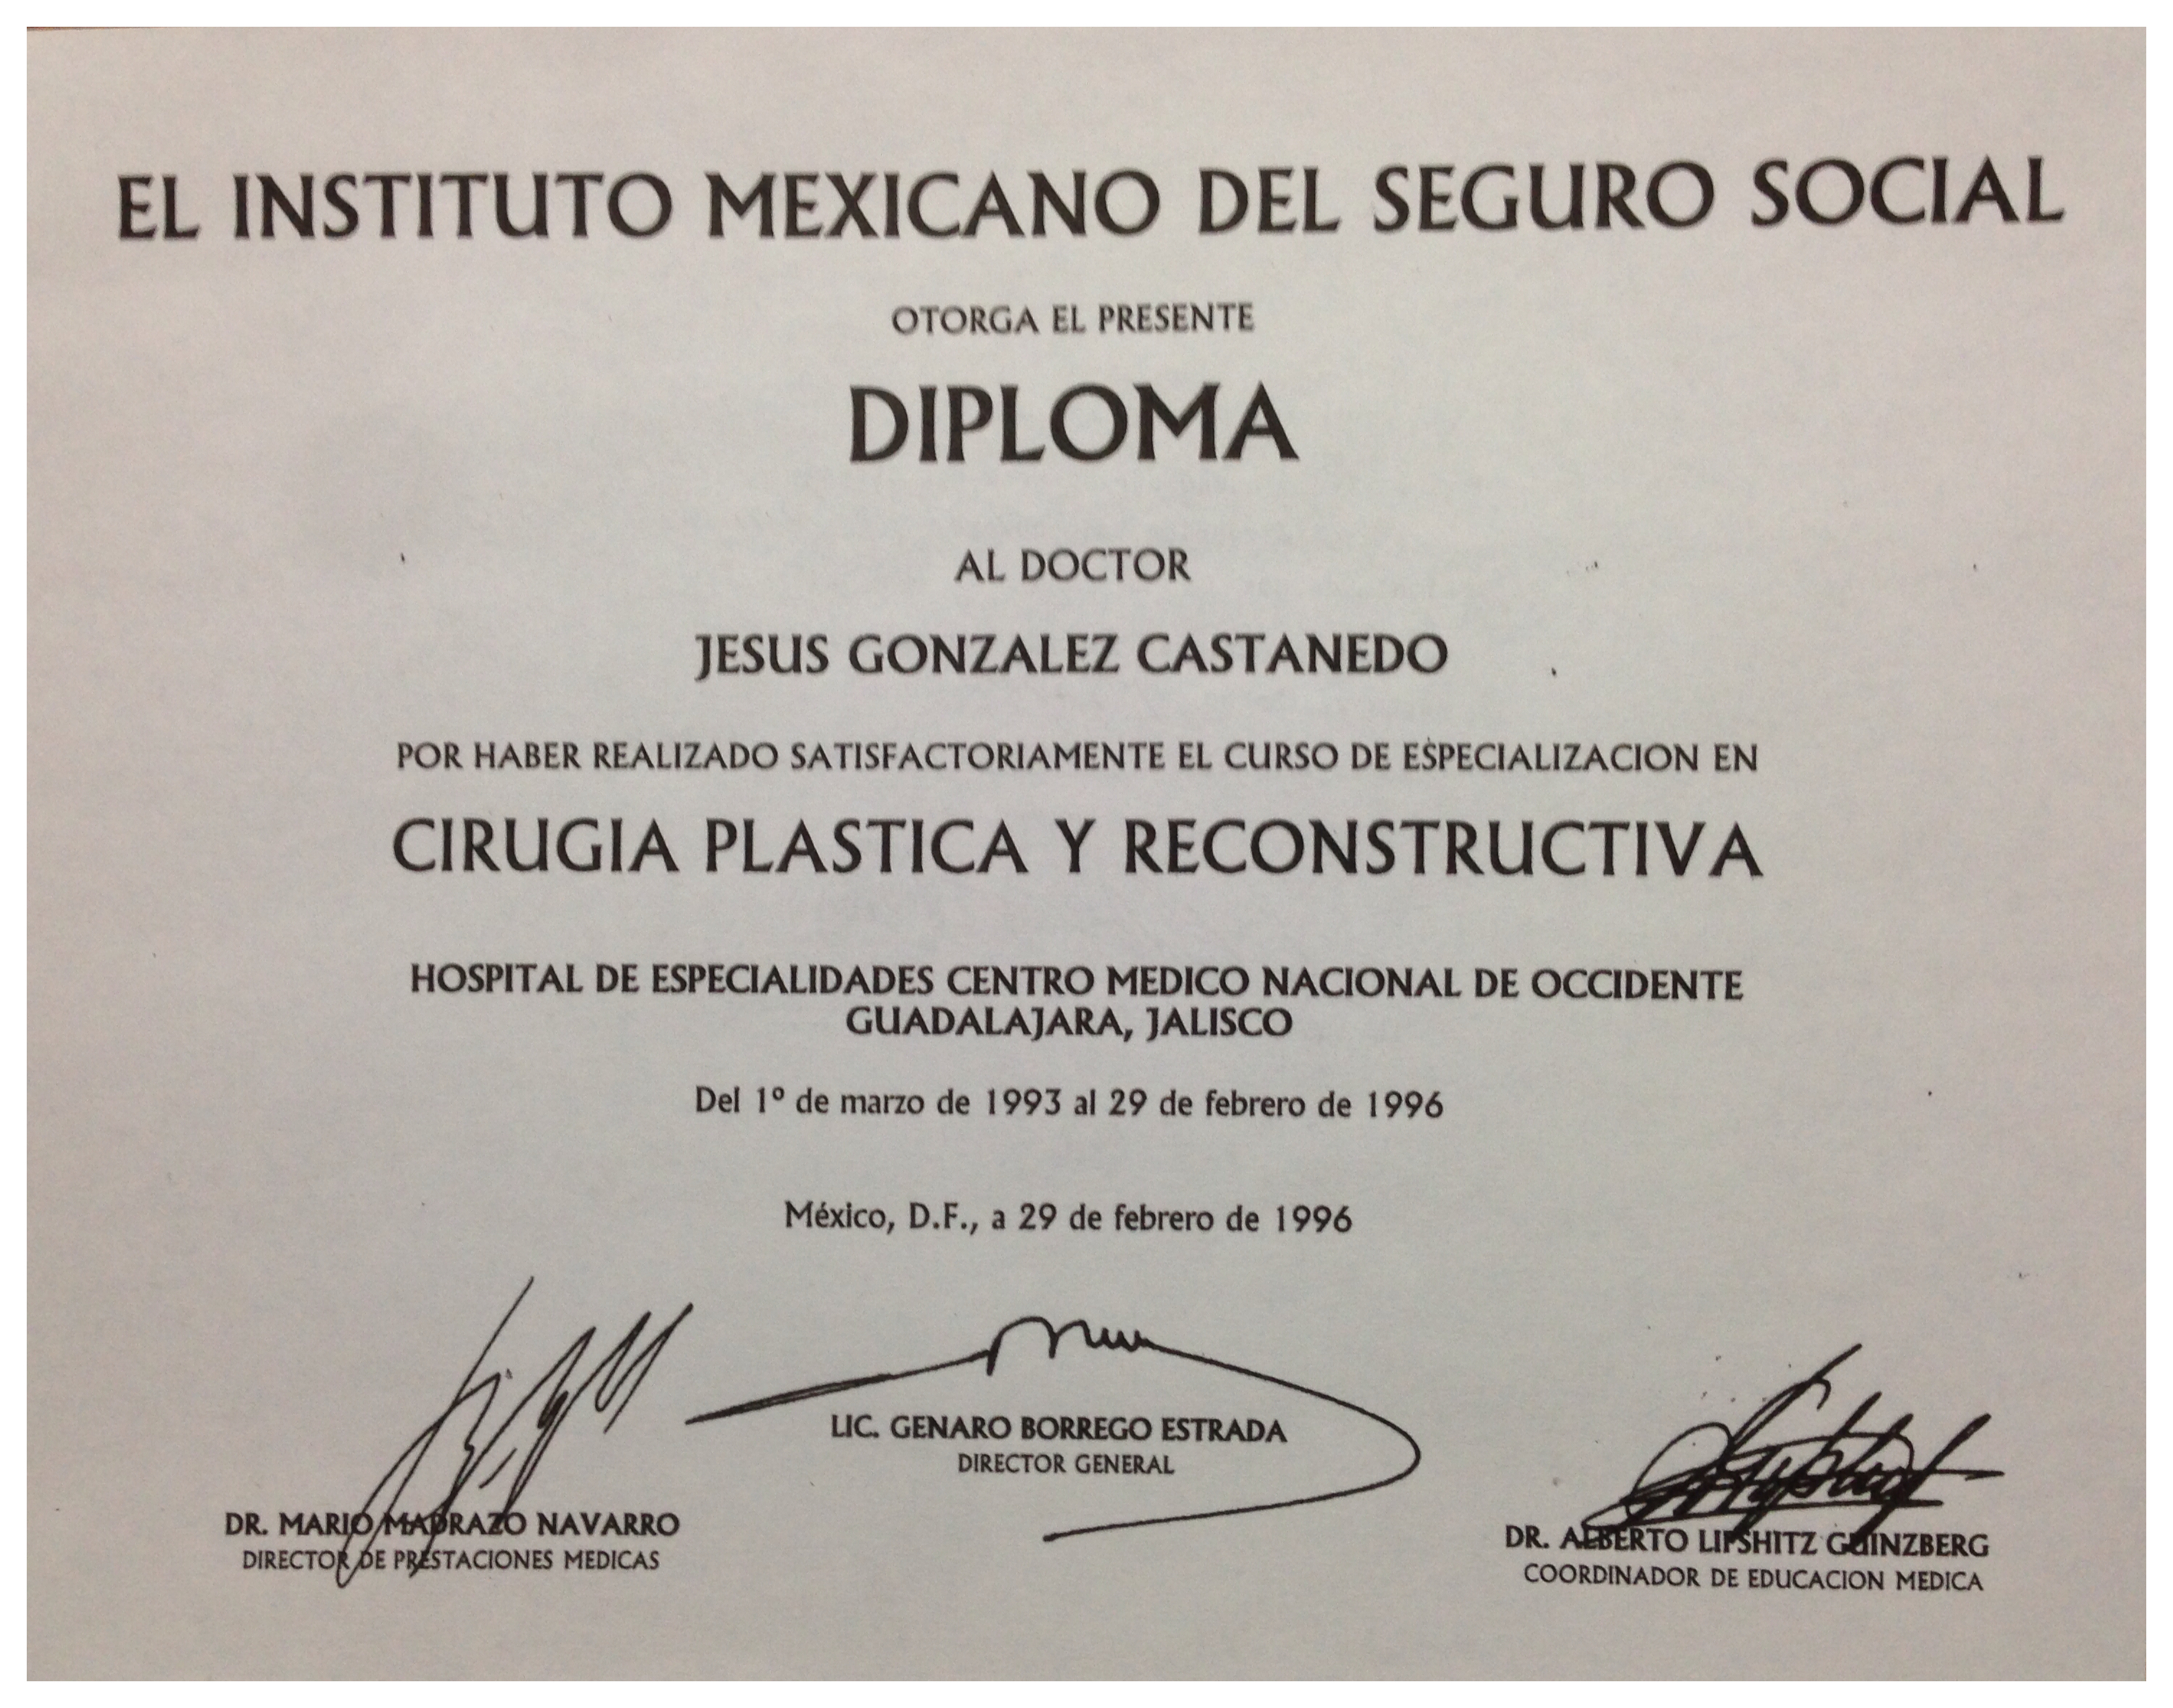 Mexican Institute of Social Security (IMSS) Diploma